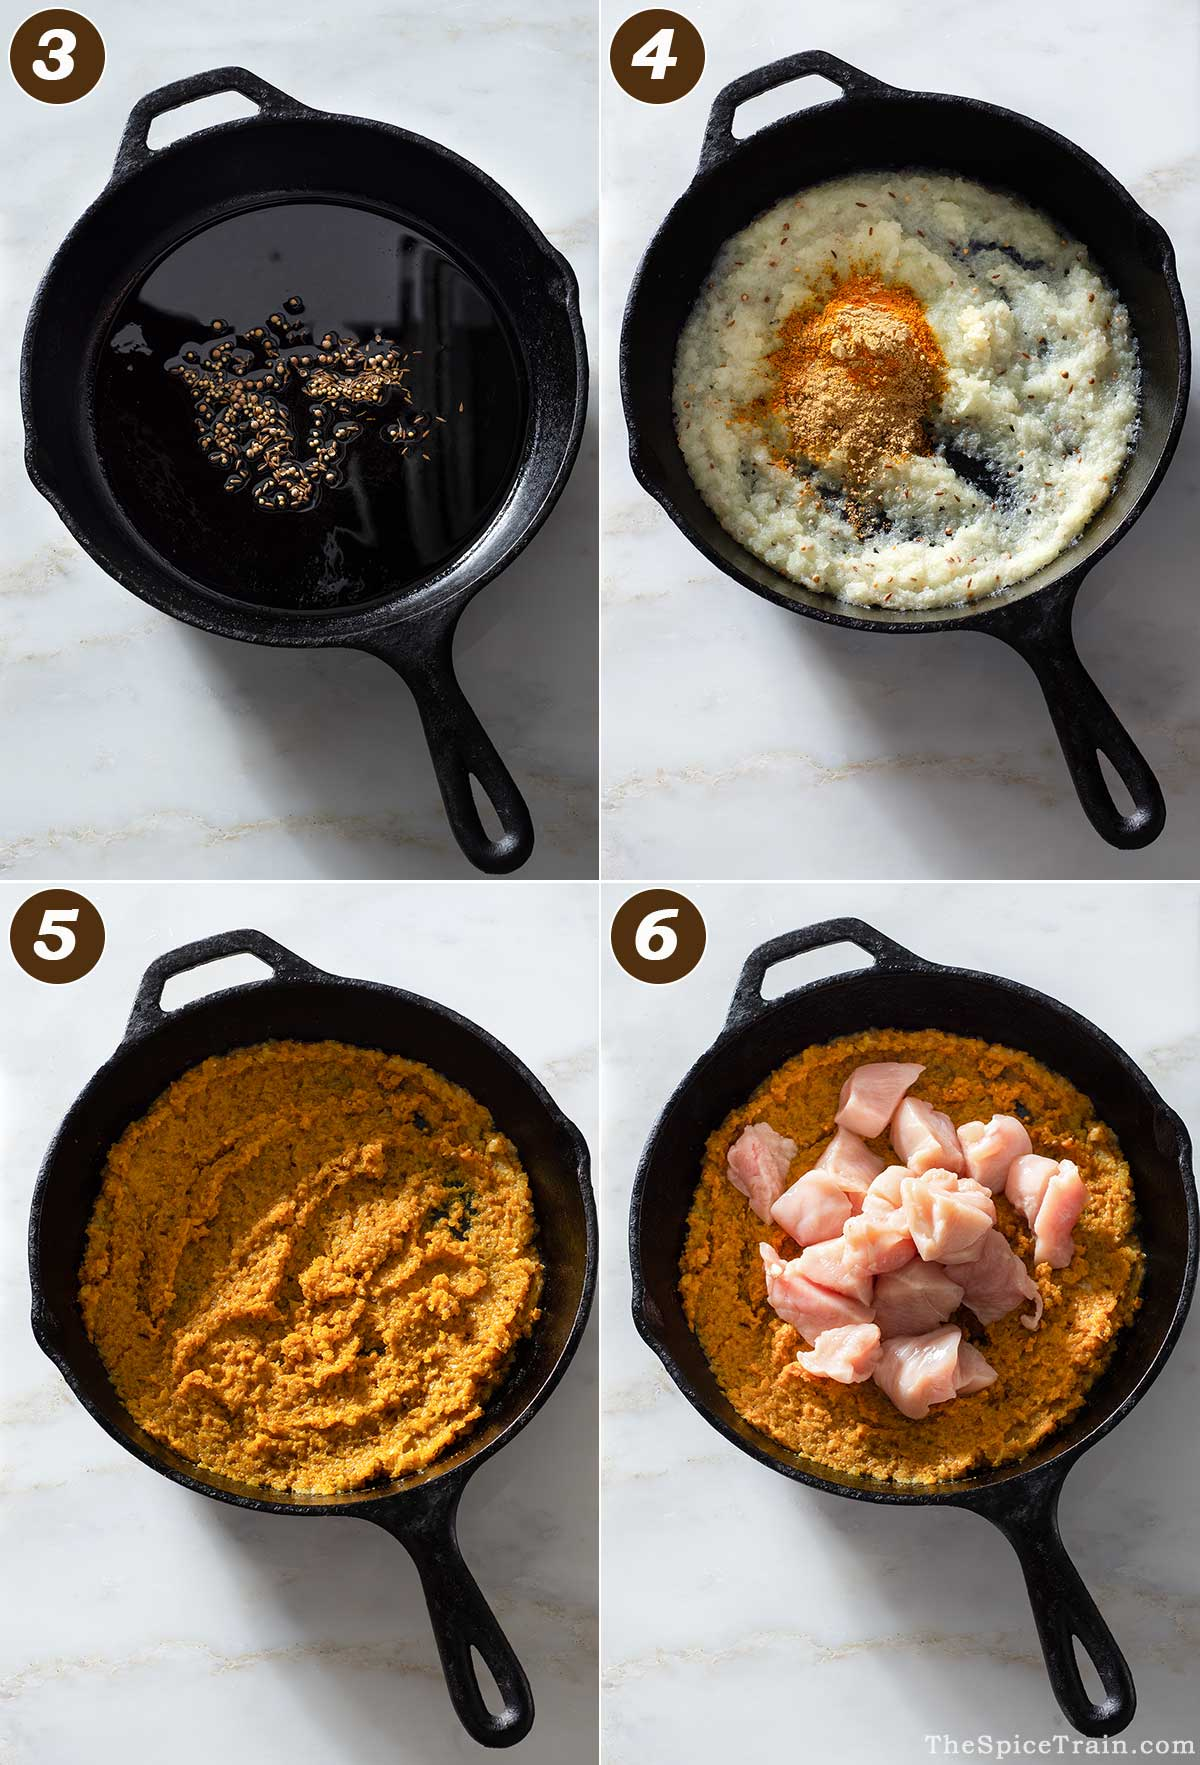 Curry preparation in four steps.